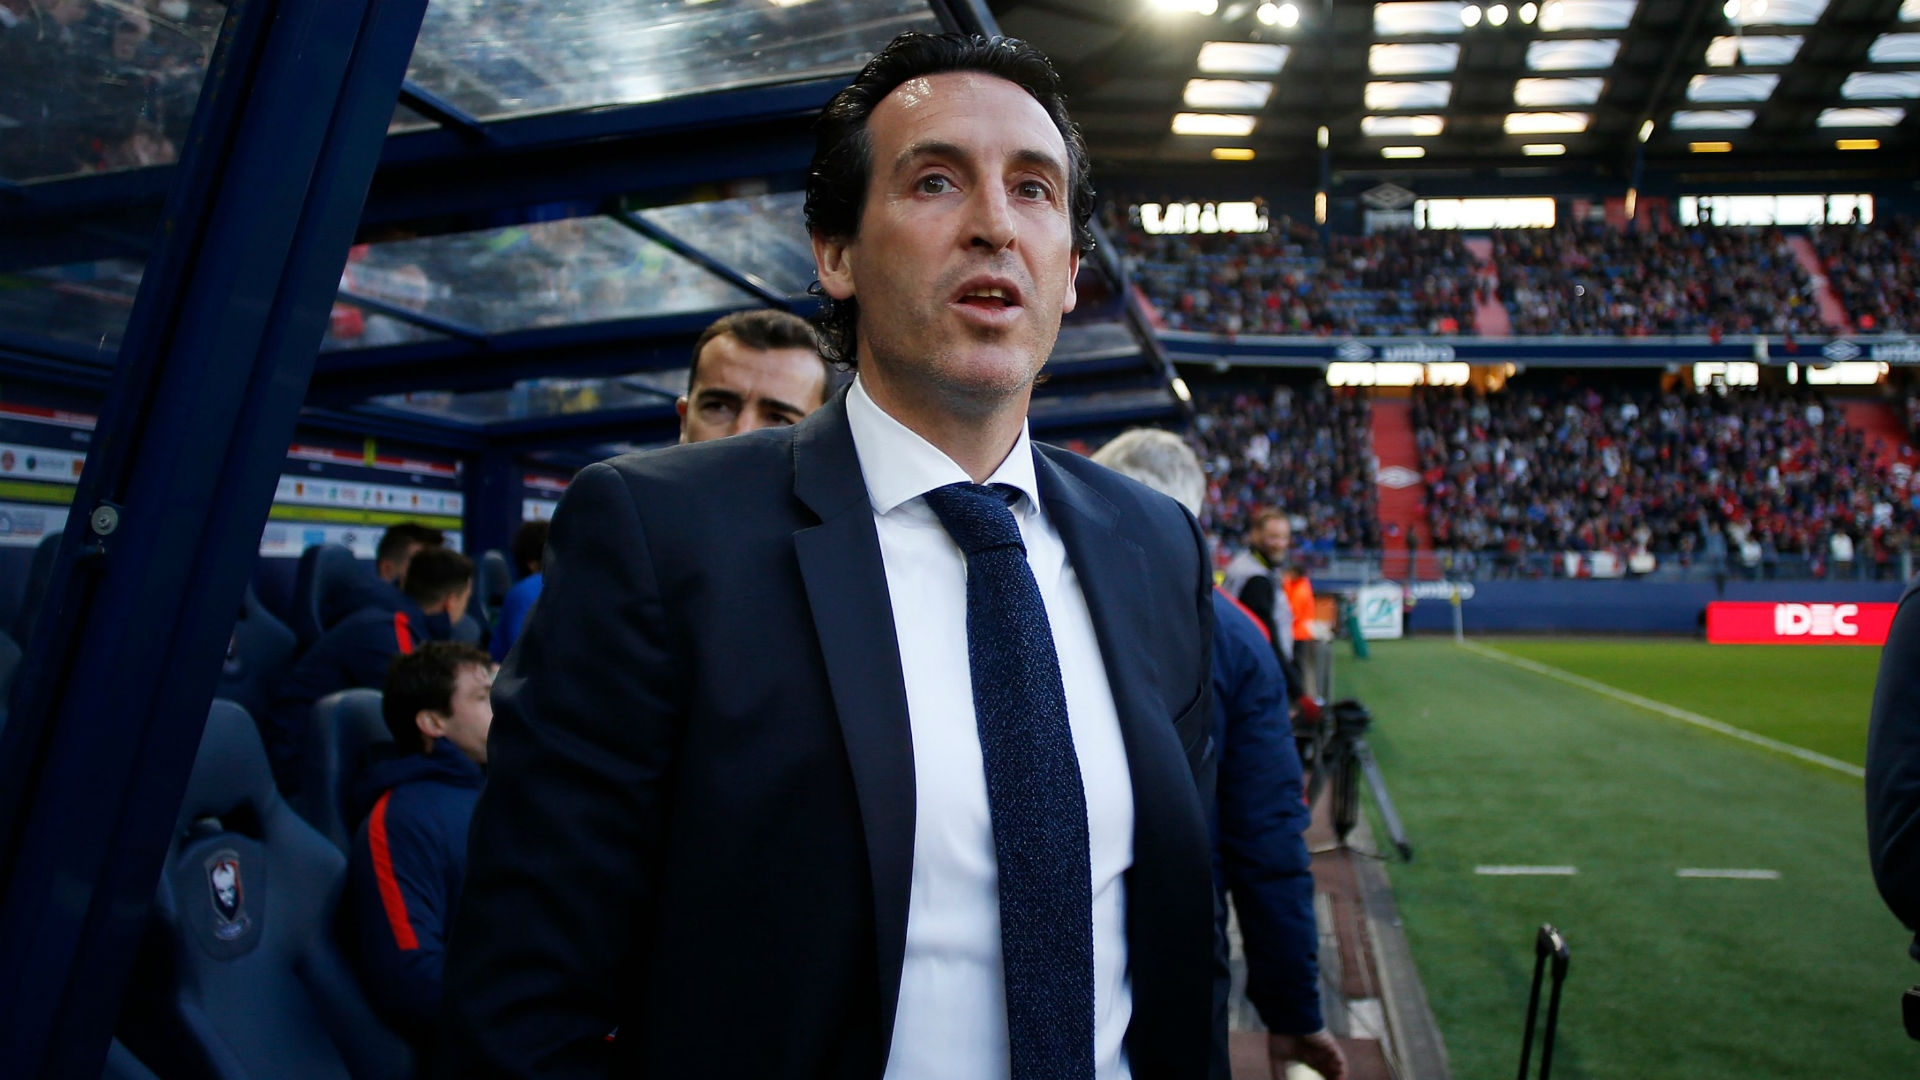 Unai Emery, formerly of PSG